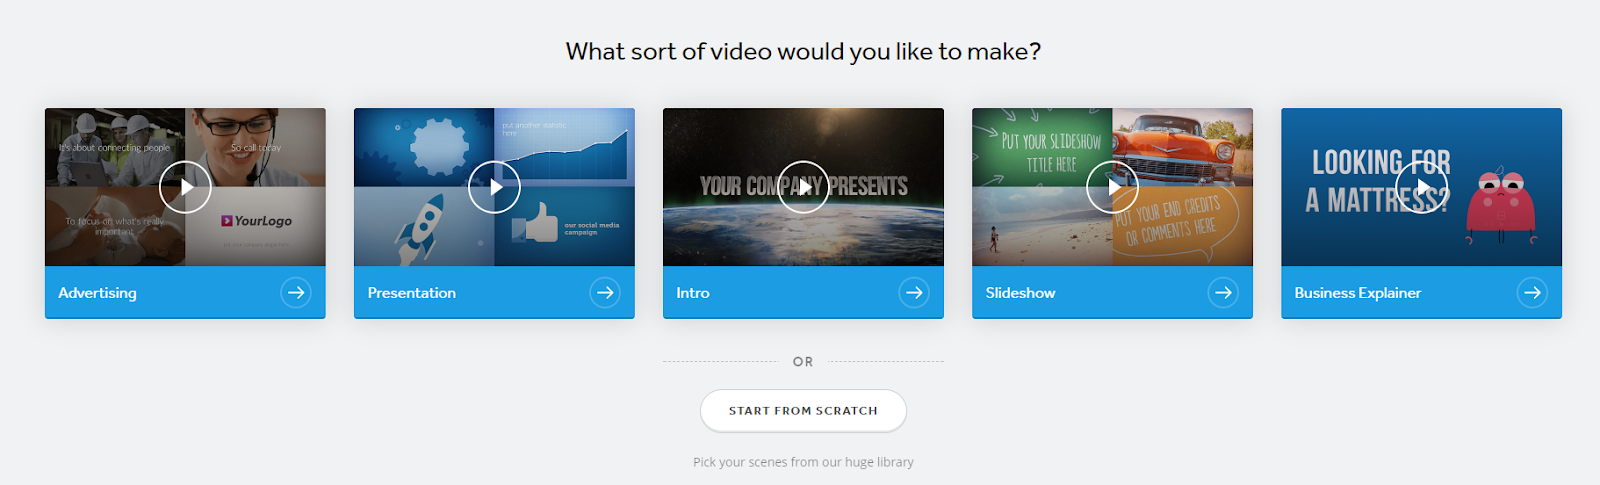 How to Create a Professional Promo Video on a Shoestring Budget 19